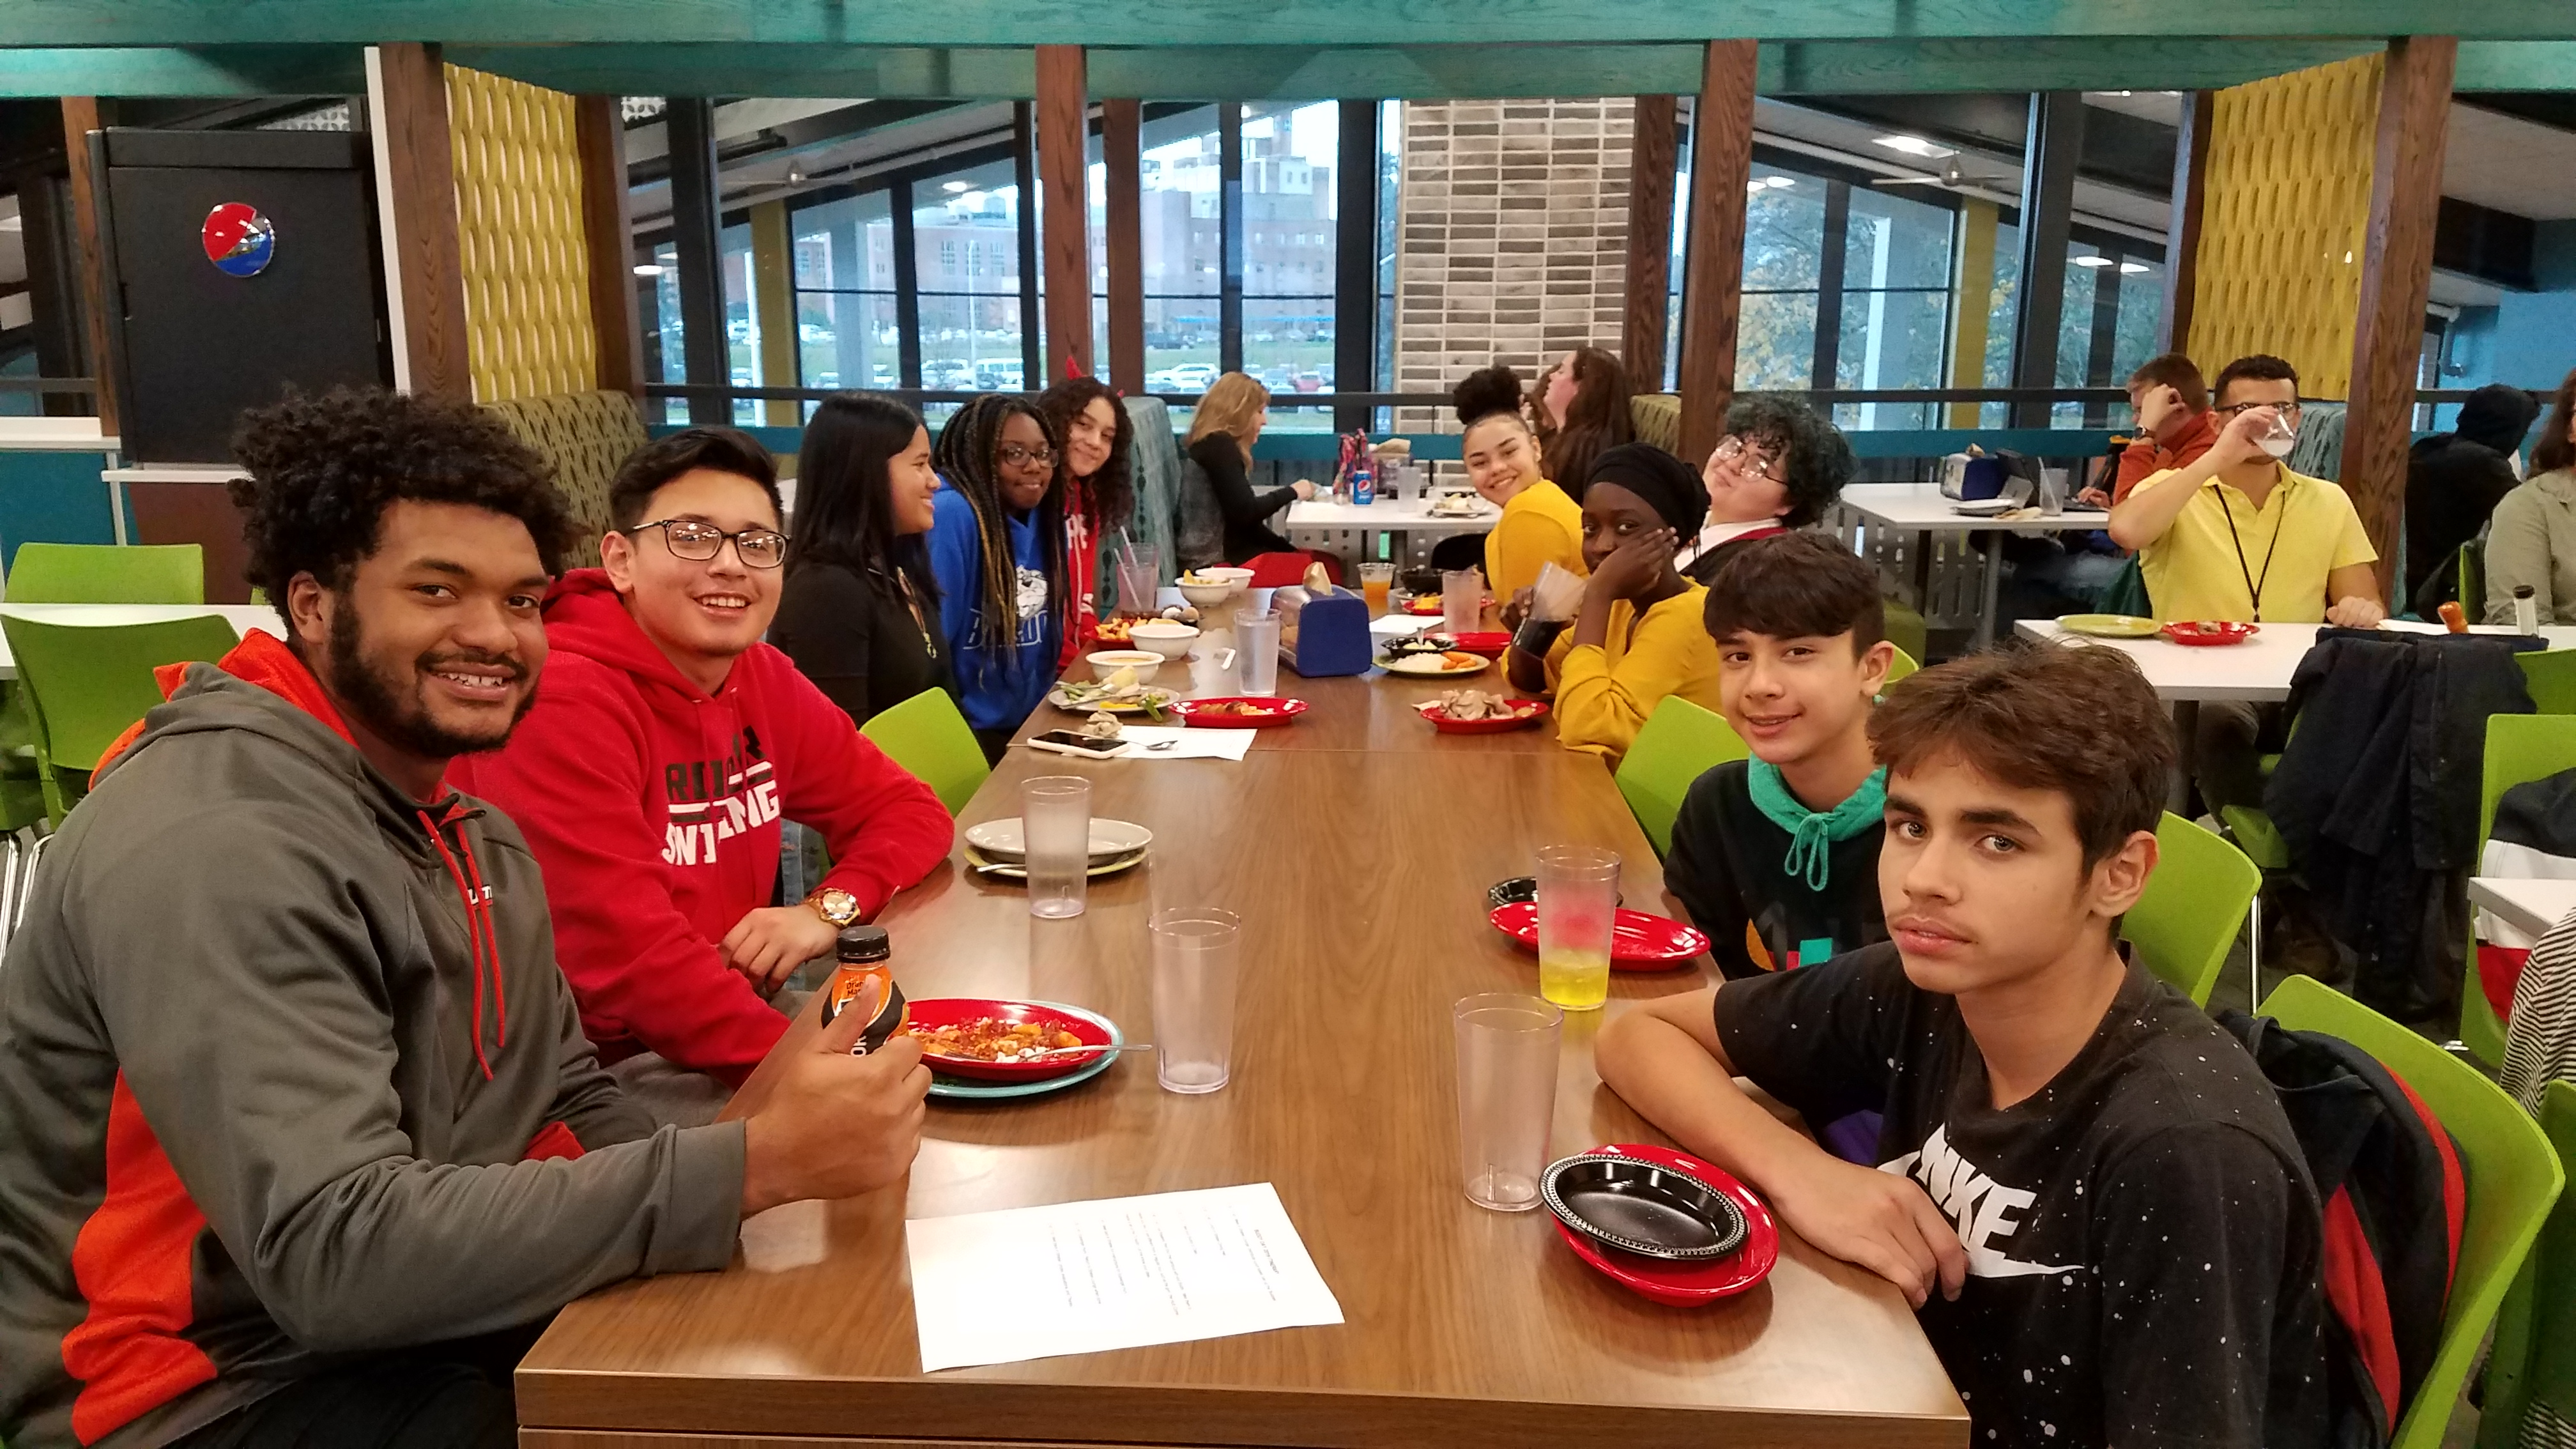 8th Grade Young Scholars enjoying lunch at Utica College for Buddy Day